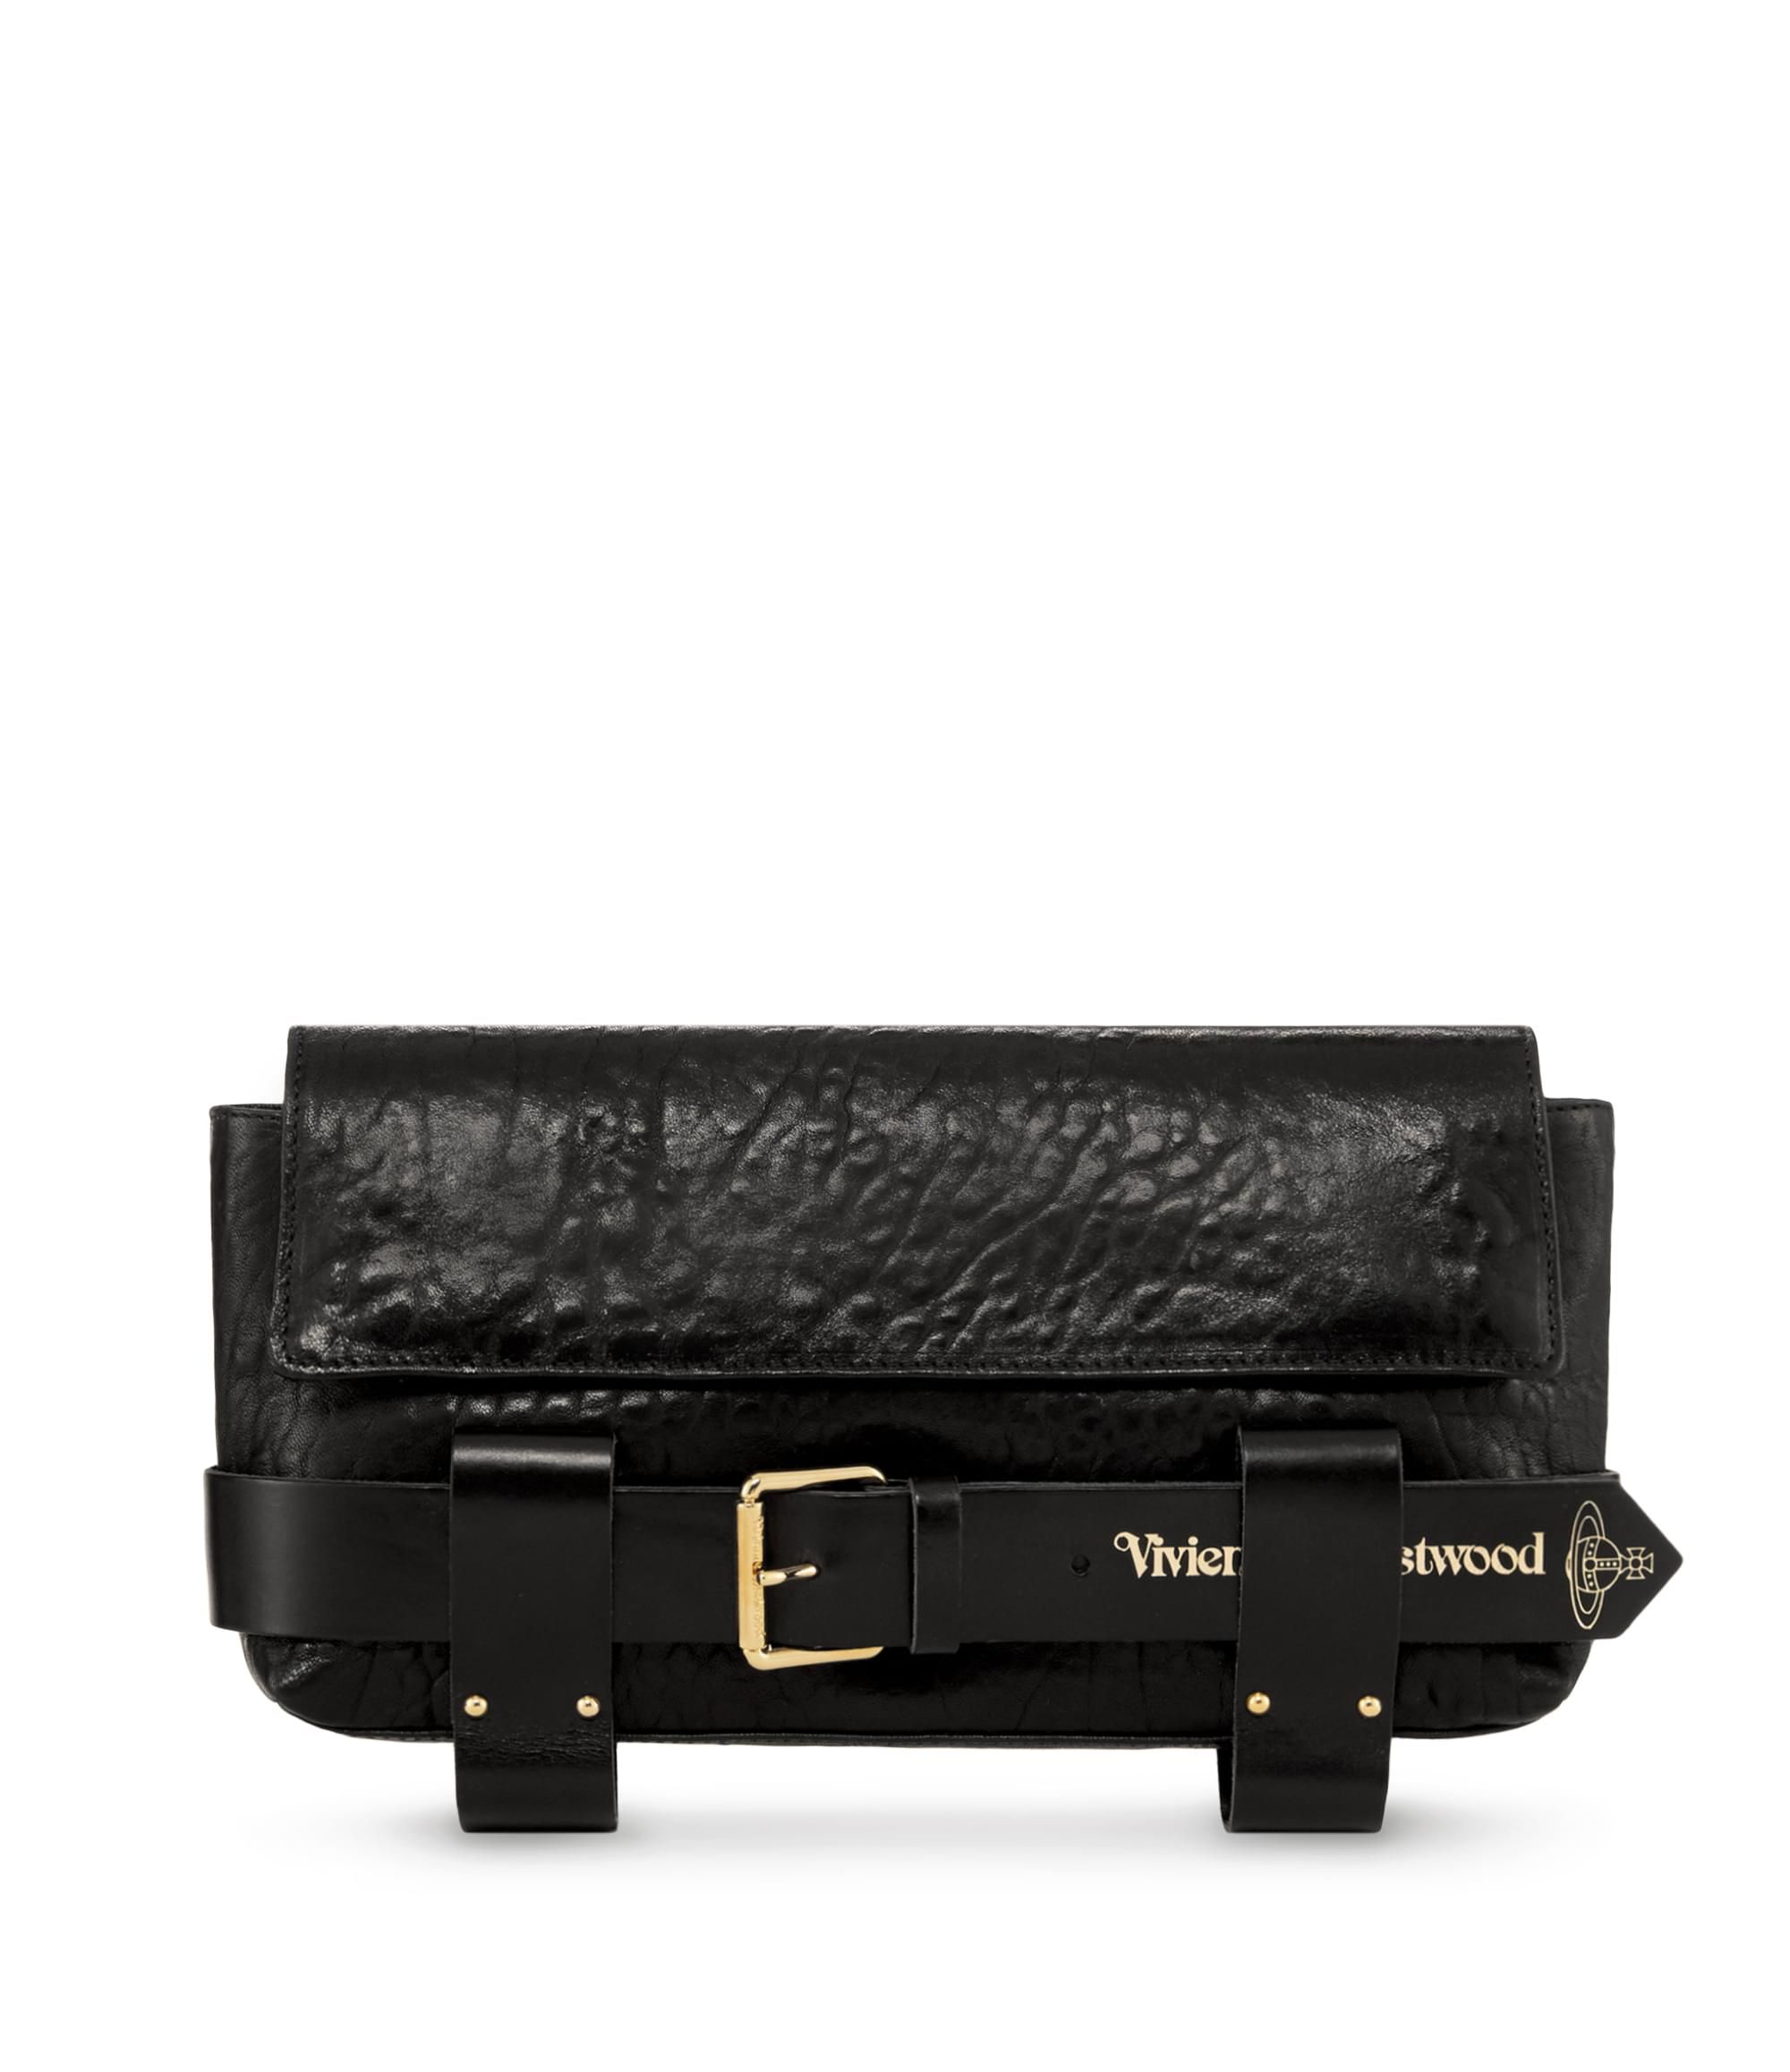 Vivienne Westwood Black Bondage Clutch Bag 7111